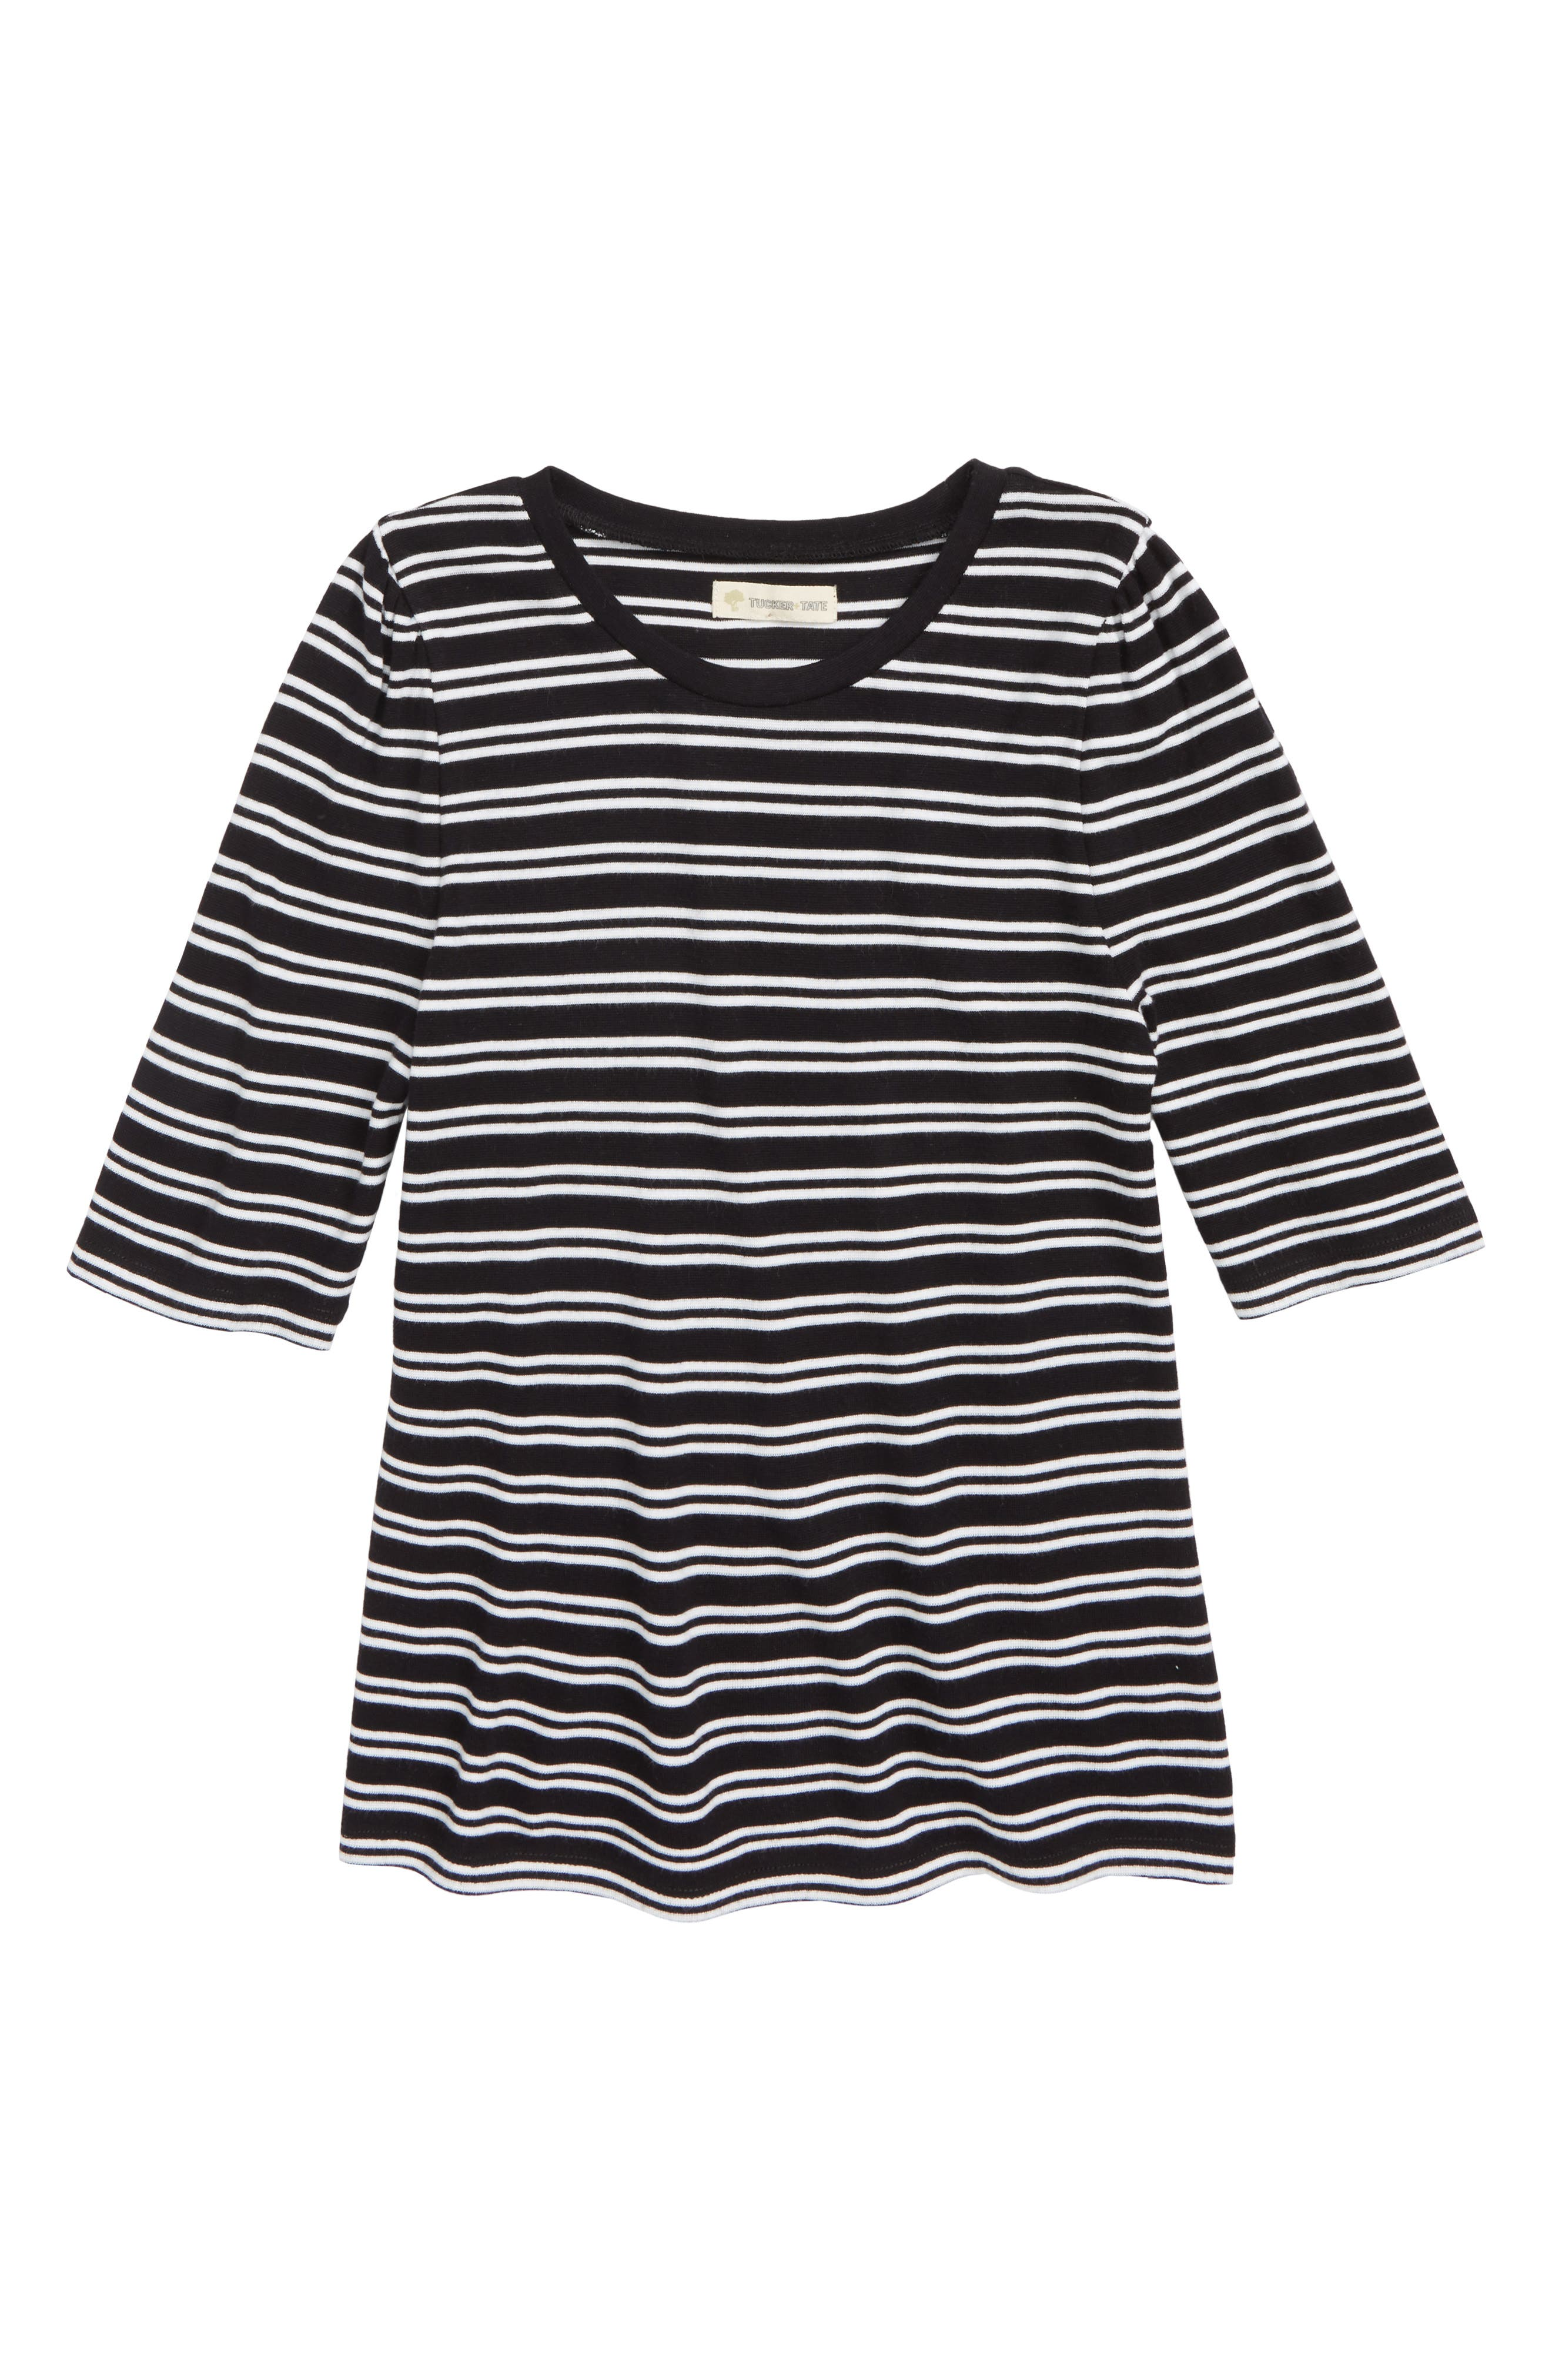 Stripe Puff Sleeve Tee,                         Main,                         color, 001